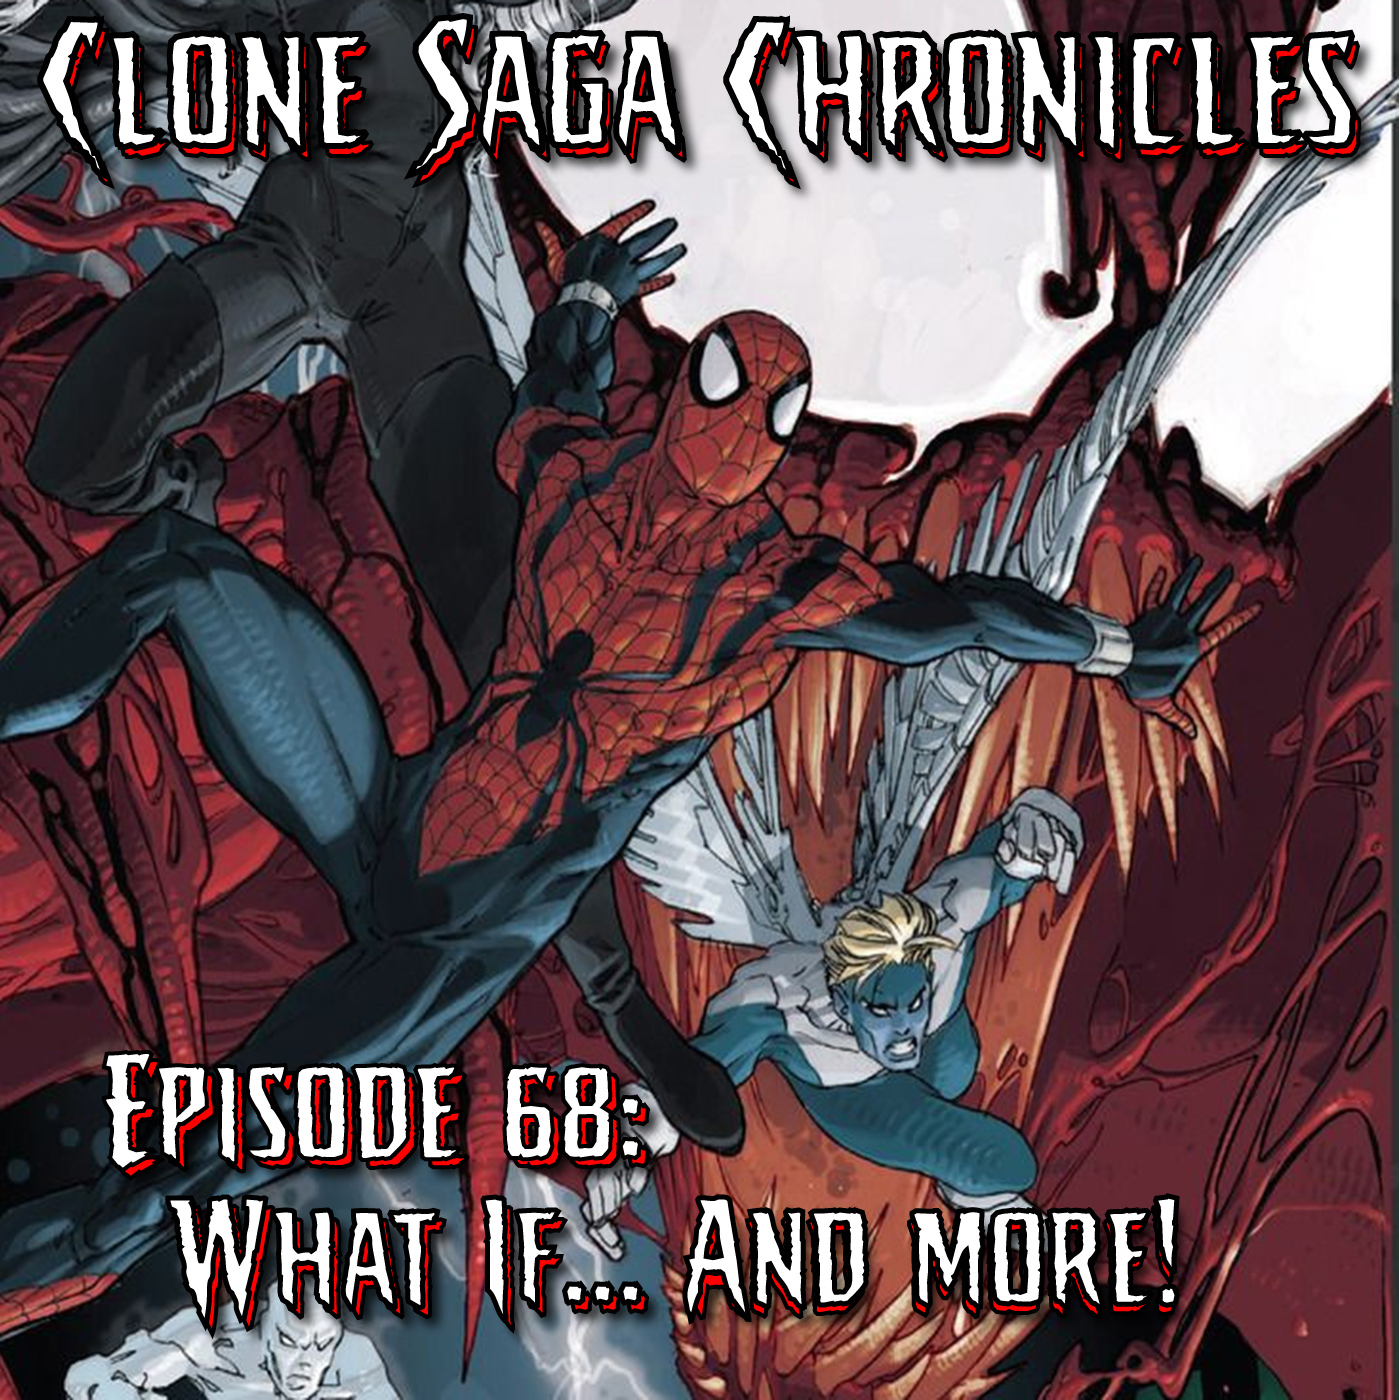 CSC Episode 68: What IF?!…. And More!